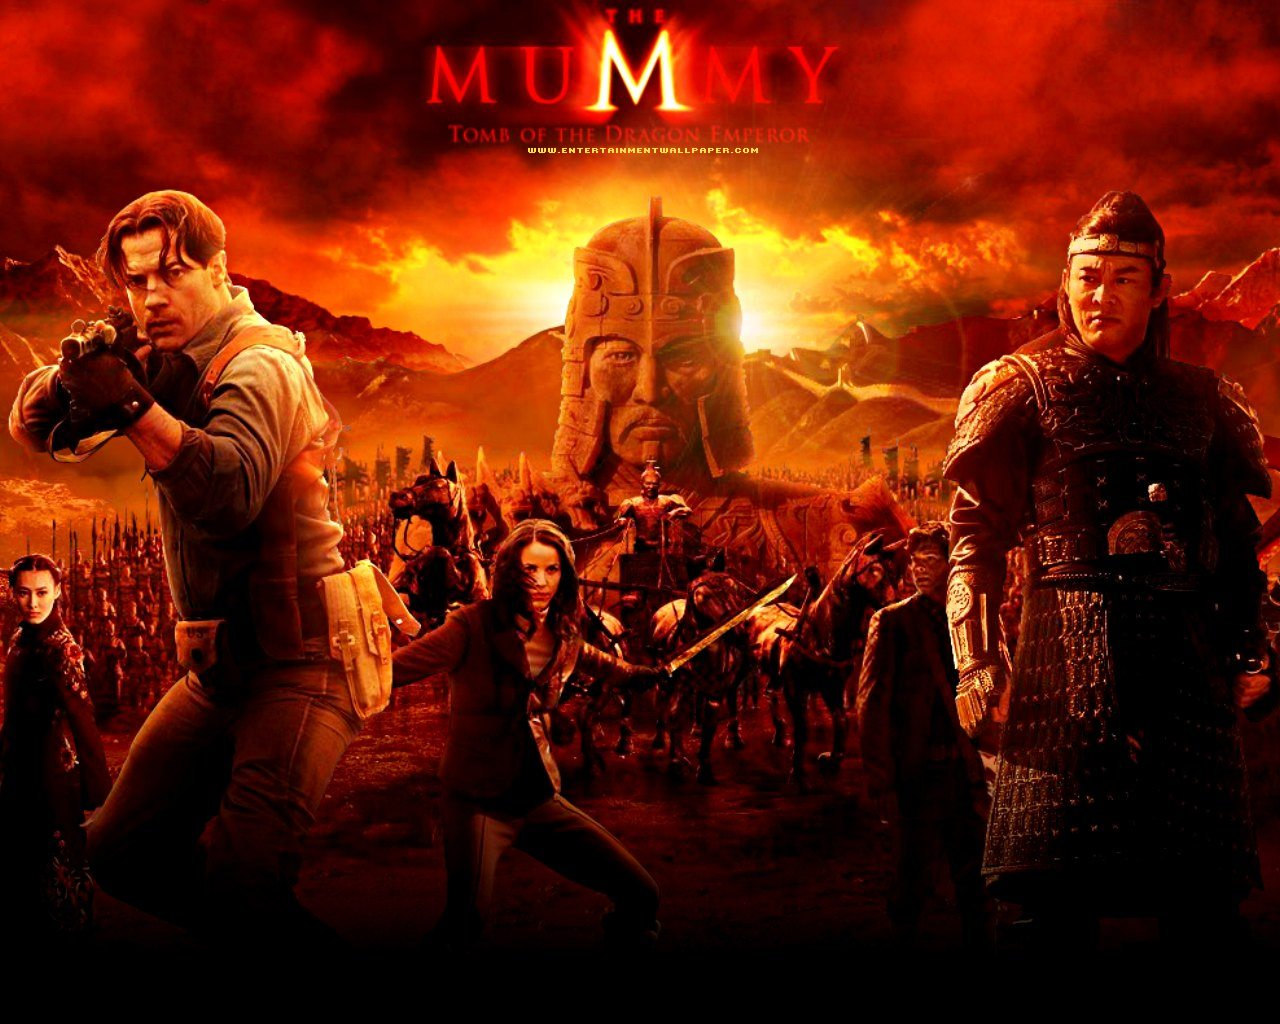 the mummy tomb of the dragon emperor (2008) full movie hd in hindi